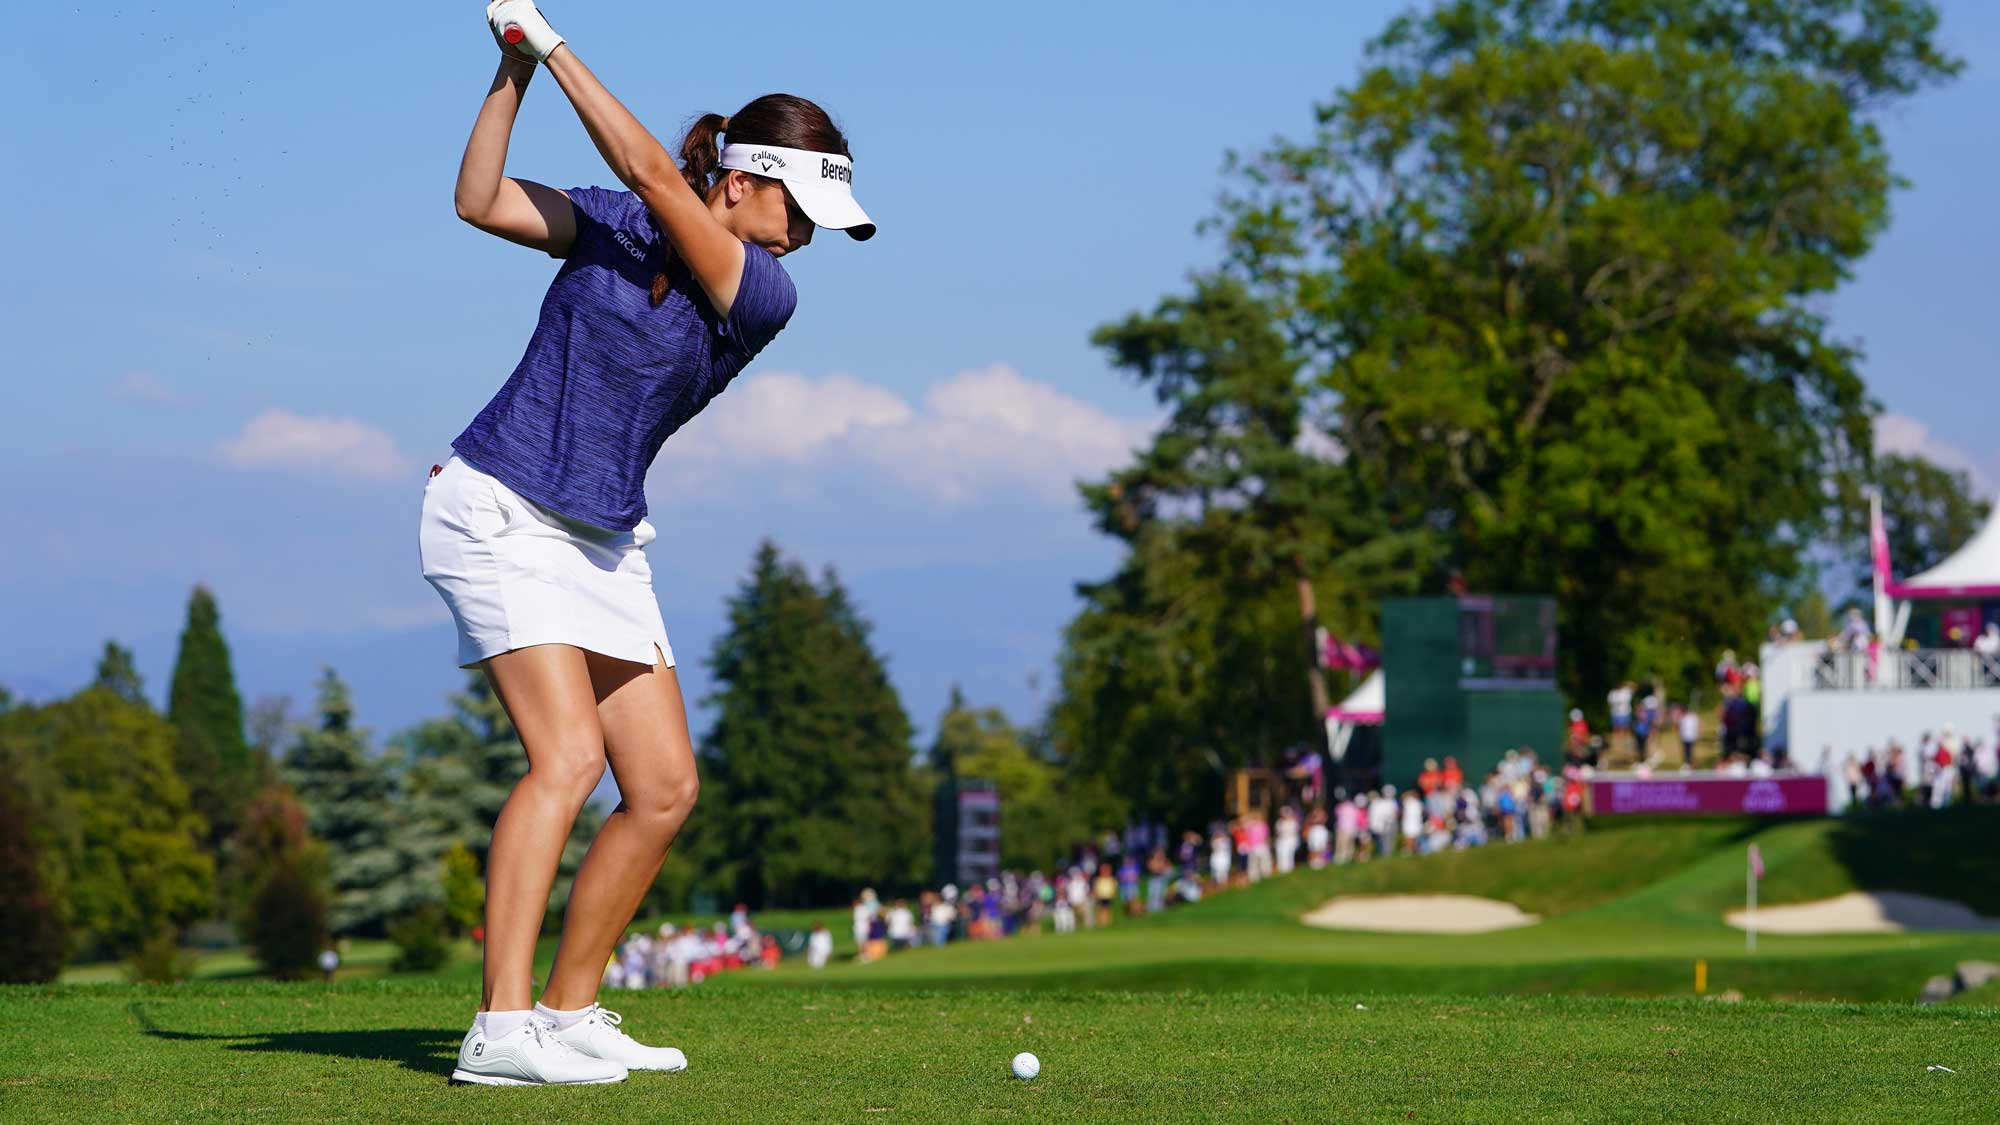 Georgia Hall of England plays a shot during the third round of The Evian Championship